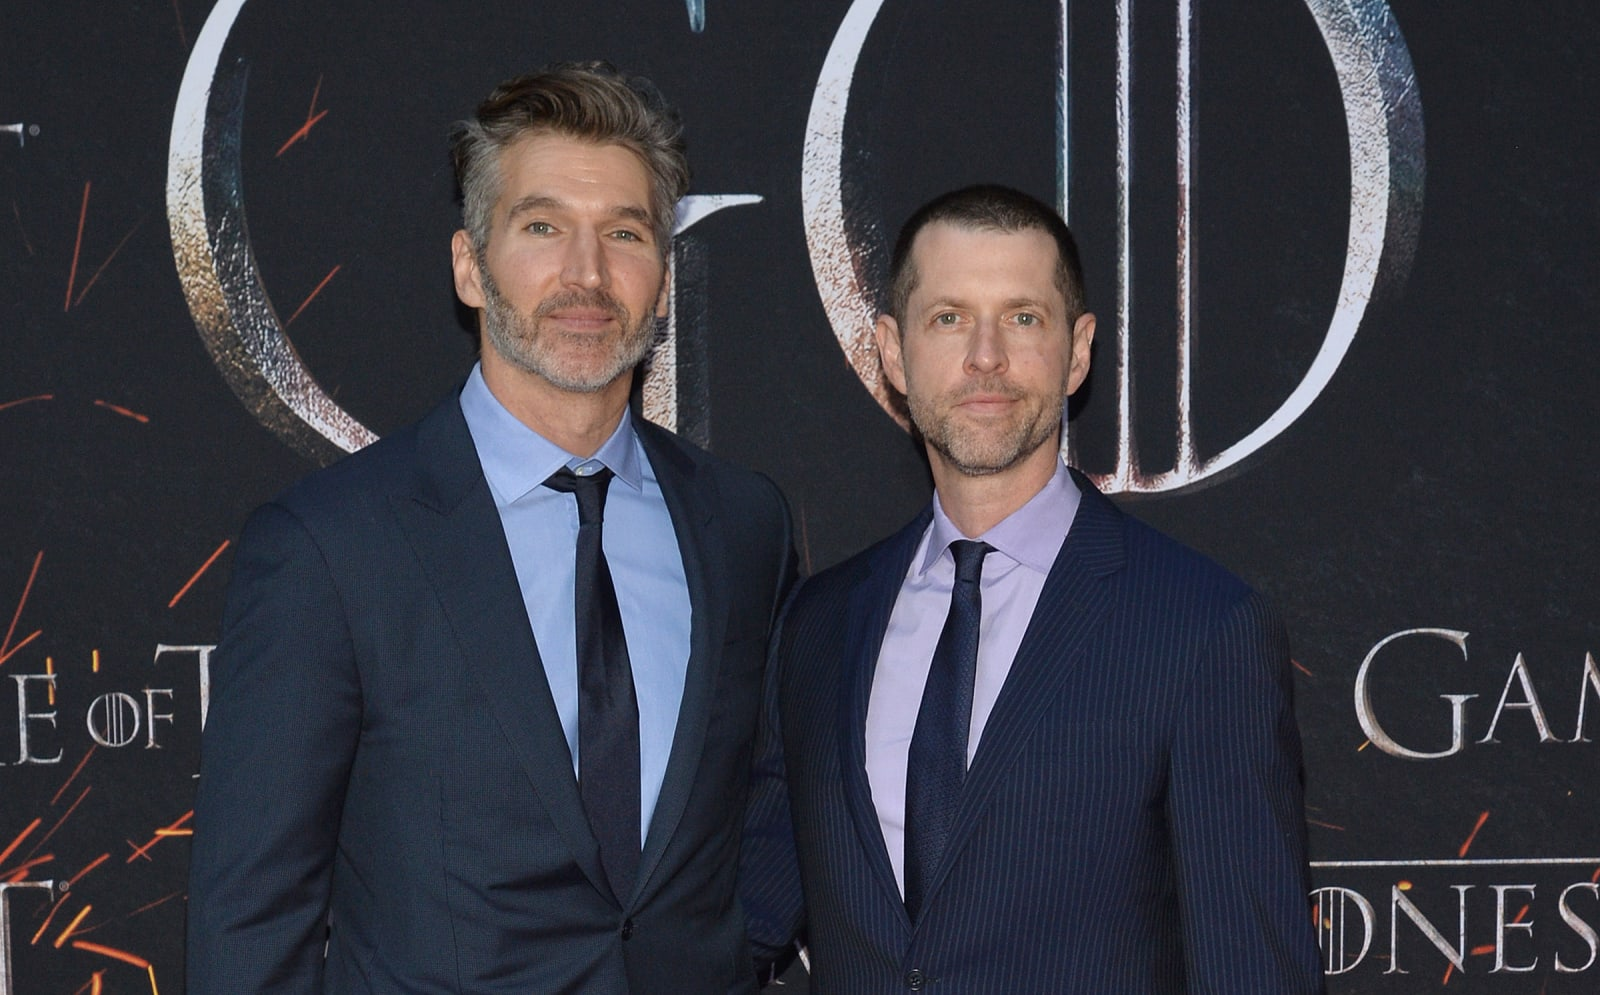 Netflix signs a $200 million deal with 'Game of Thrones' showrunners